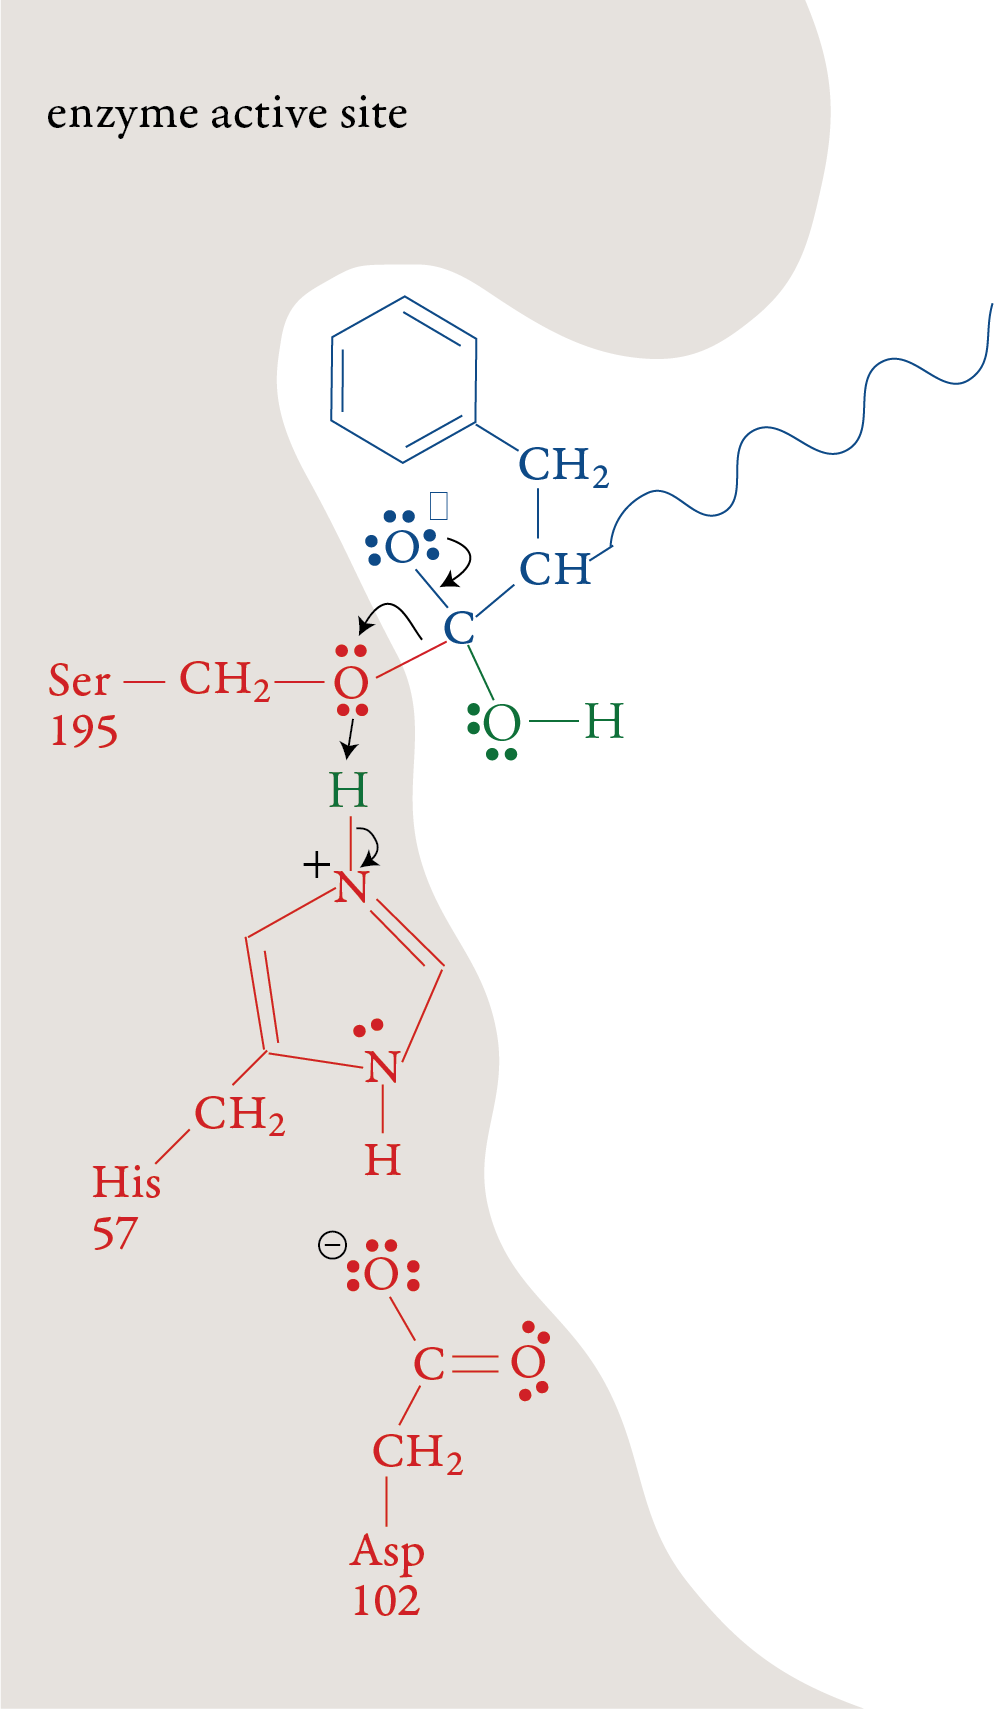 Image of the fifth step in the chymotrypsin mechanism